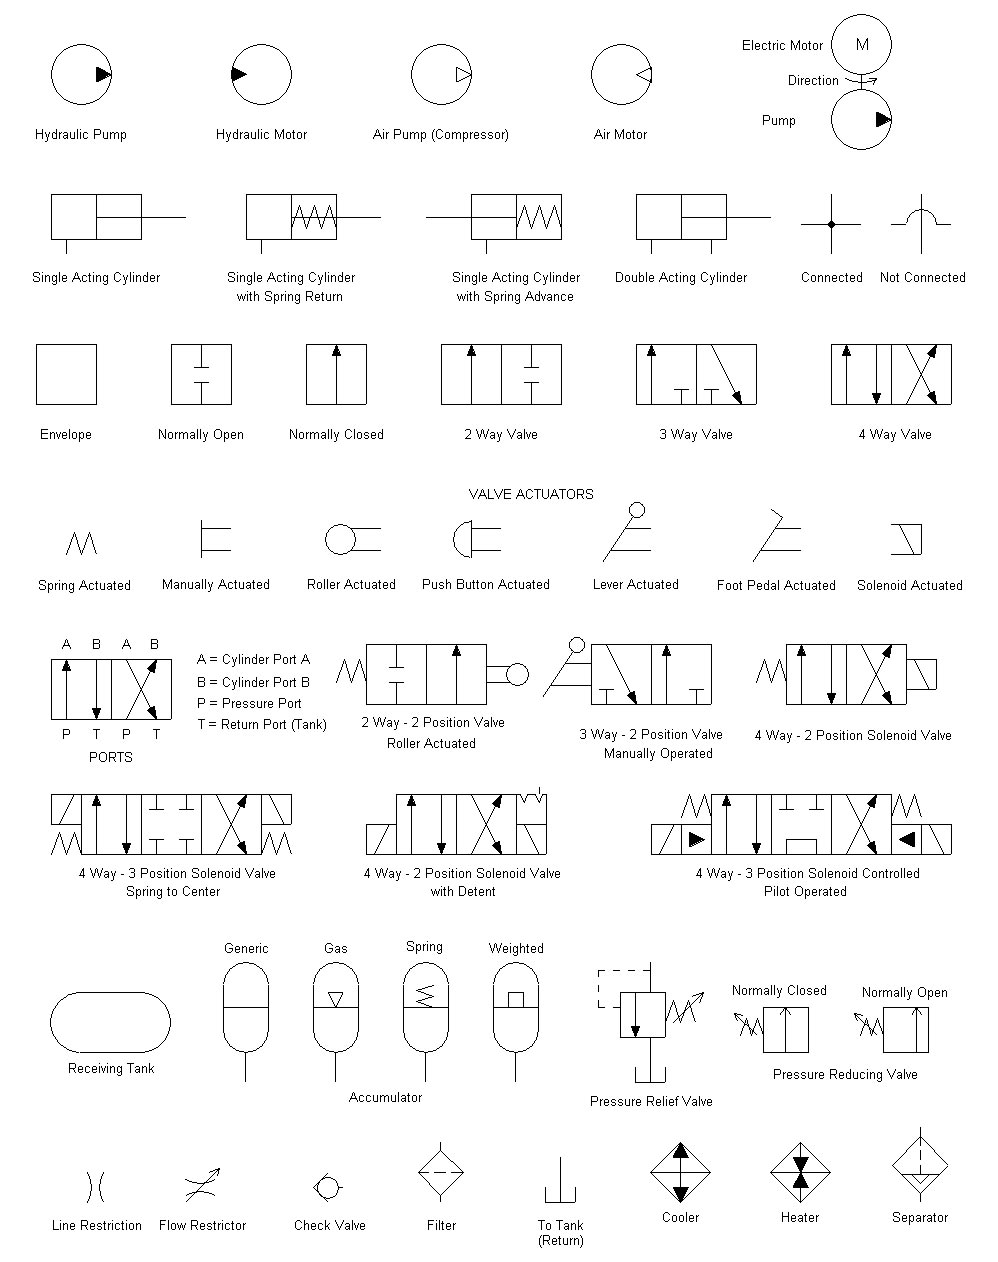 EZ Schematics Pro Hydraulic Symbols on basic pneumatic symbols, understanding hydraulic symbols, hydraulic parts, hydraulic symbols pdf, truck hydraulics, universal hydraulic symbols, standard hydraulic symbols, hydraulic kit, vickers hydraulic, basic hydraulic symbols, hydraulic schematic symbols library, hydraulic component symbols, hydraulic symbols and their meaning, racine hydraulic pumps, ansi hydraulic symbols, hydraulic symbols chart, car hydraulics, german hydraulic symbols, cyclone fencing, hydraulic motor, hydraulic generator, hydraulic cad symbols, hydraulic conductivity, hydraulic drawing symbols, gates hydraulics, hydraulic dump trailer, hydraulic shocks, ascii symbols, electrical symbols, tractor hydraulics, hydraulic symbol library, hydraulic and pneumatic symbols, lowrider hydraulics, hydraulic valve, hydraulic pressure transducer symbol, hydraulic winch, northern hydraulics, hydraulic equipment, pneumatic drawing symbols, hvac symbols,